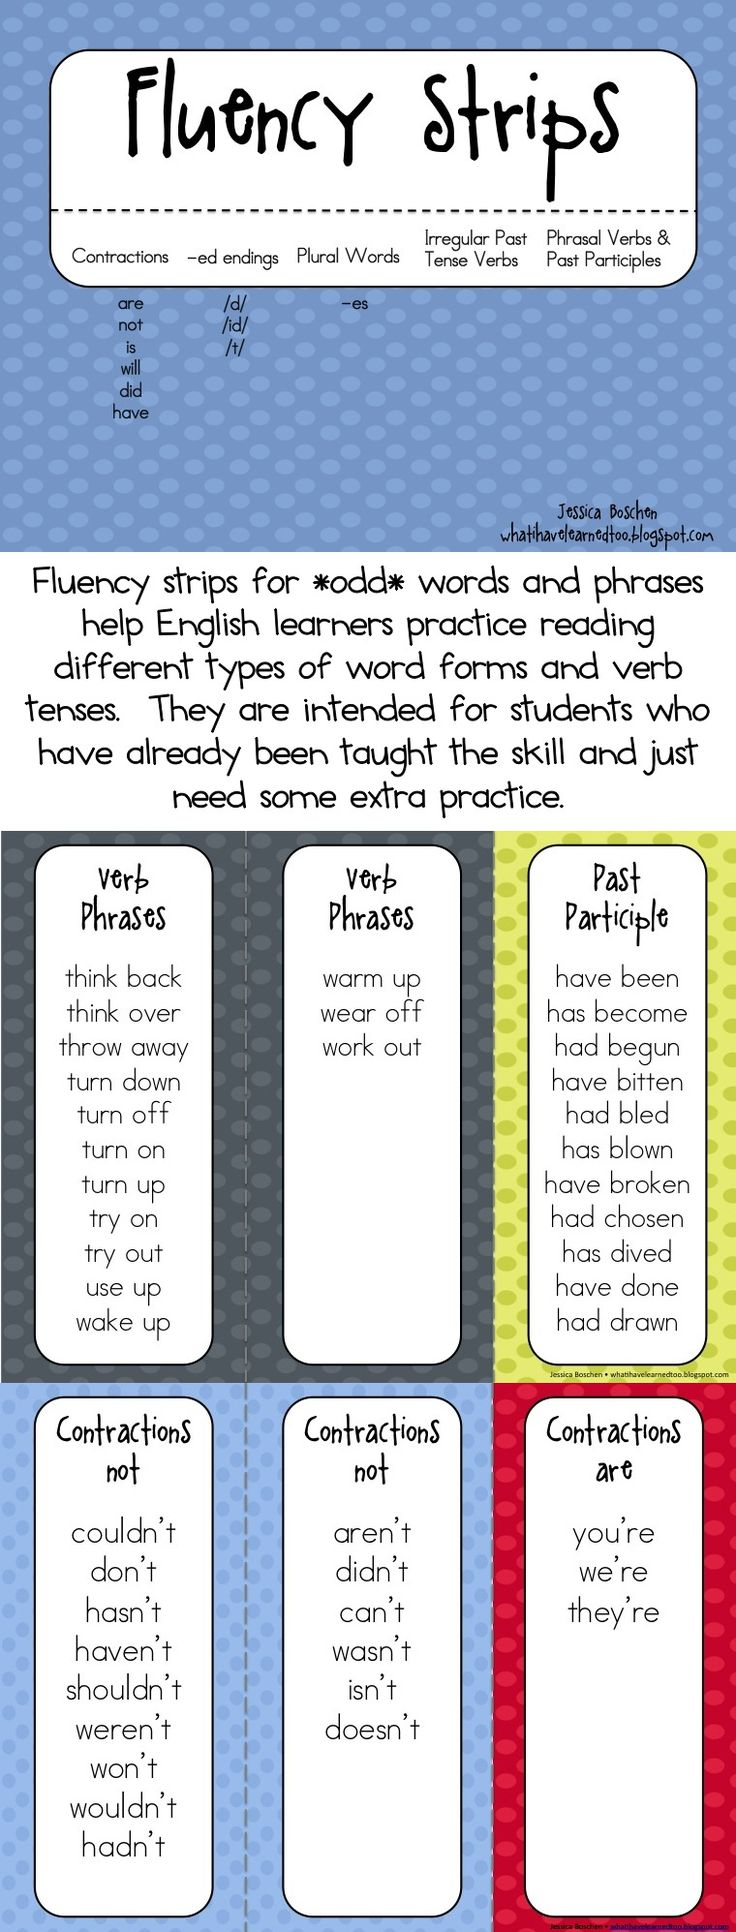 These fluency strips are intended for students who need a little extra practice reading certain types of words. Includes fluency strips for: • Contractions: will, is, not, are, did, have • Regular past tense verbs sorted by ending sound: /id/, /d/,  /t/  • Irregular past tense verbs with their present tense counterpart • Plural words with -es • Phrasal Verbs • Past Participles (have, has, had)